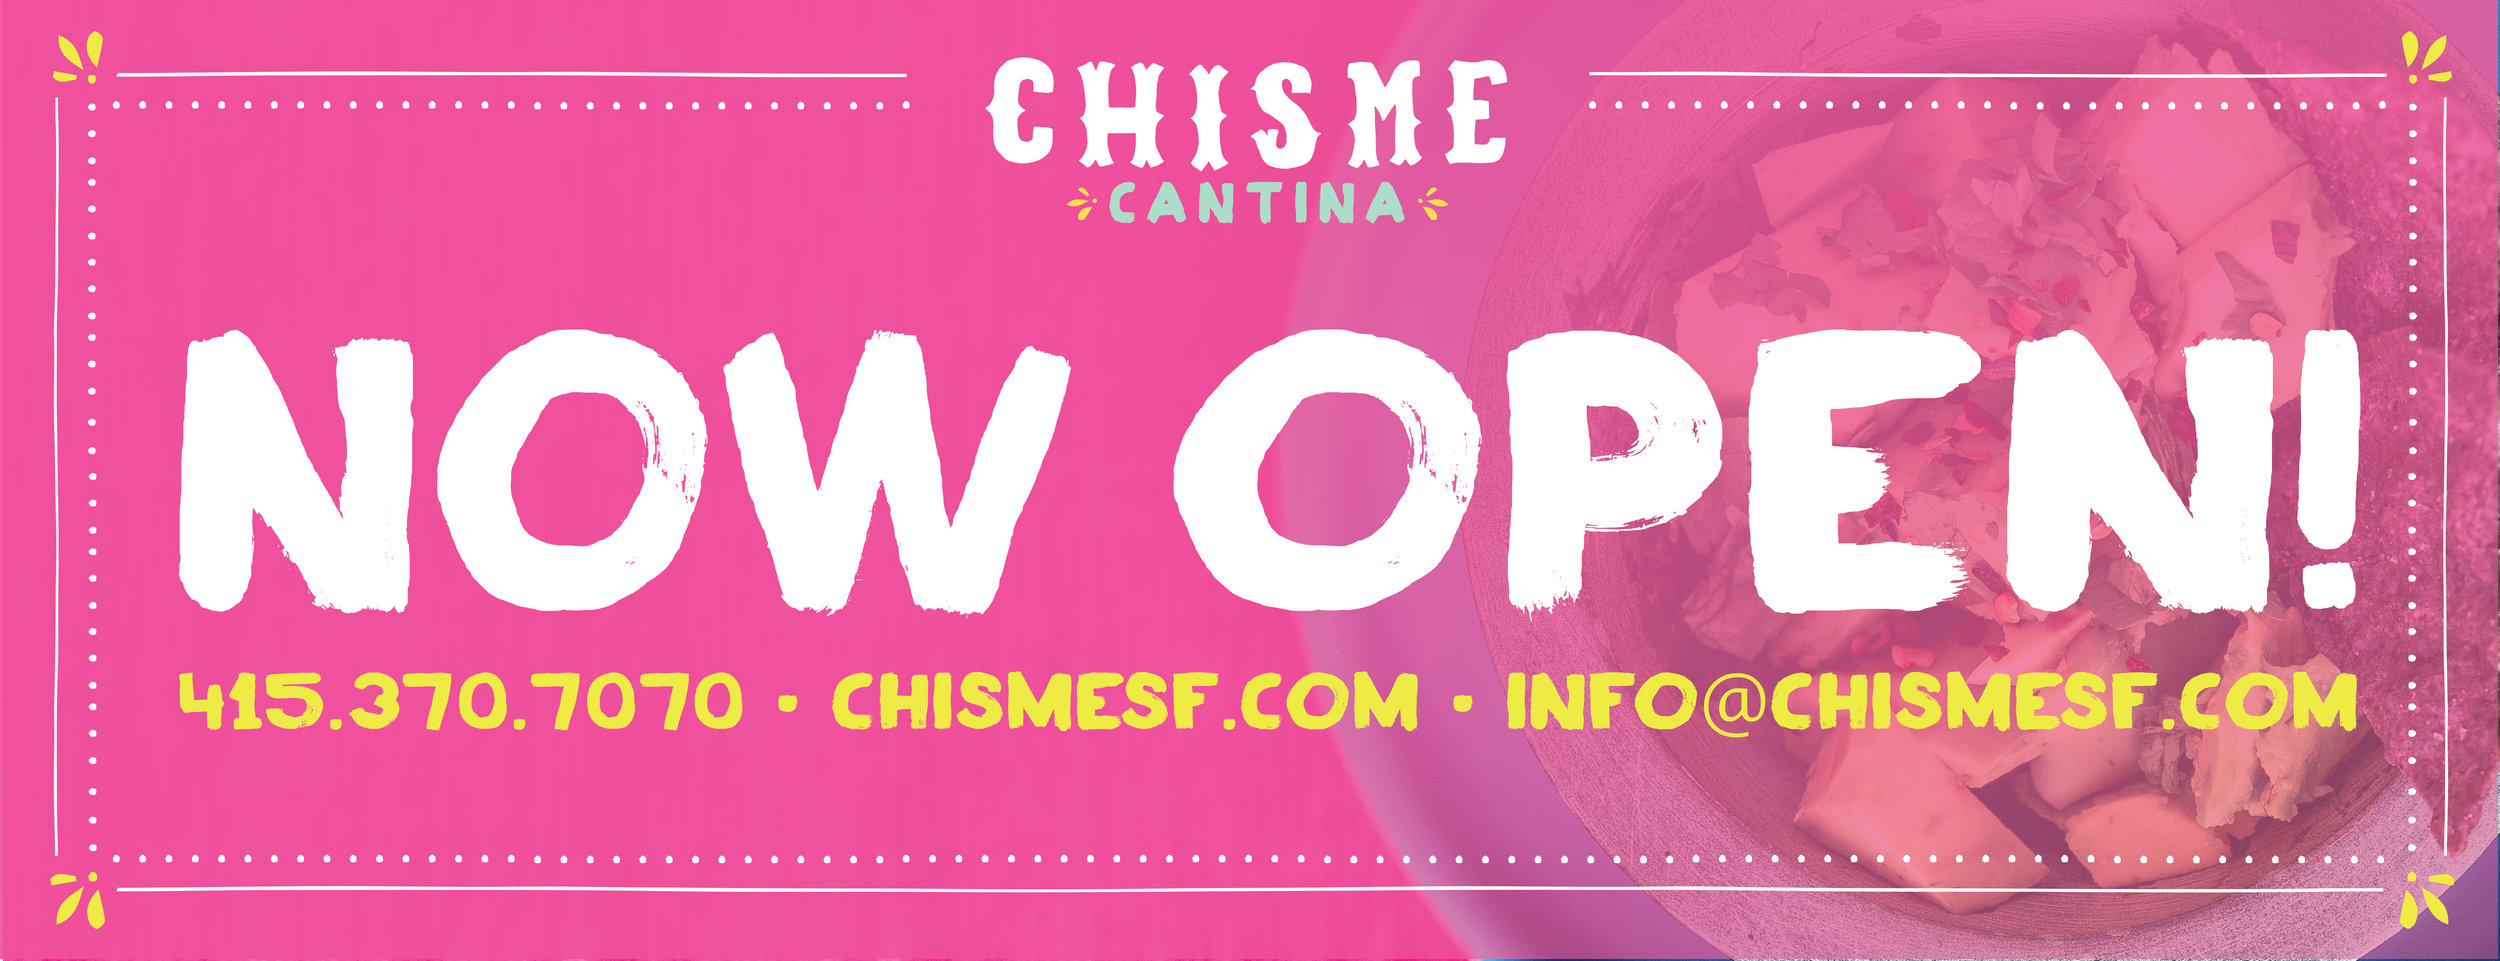 now open banner -click for details